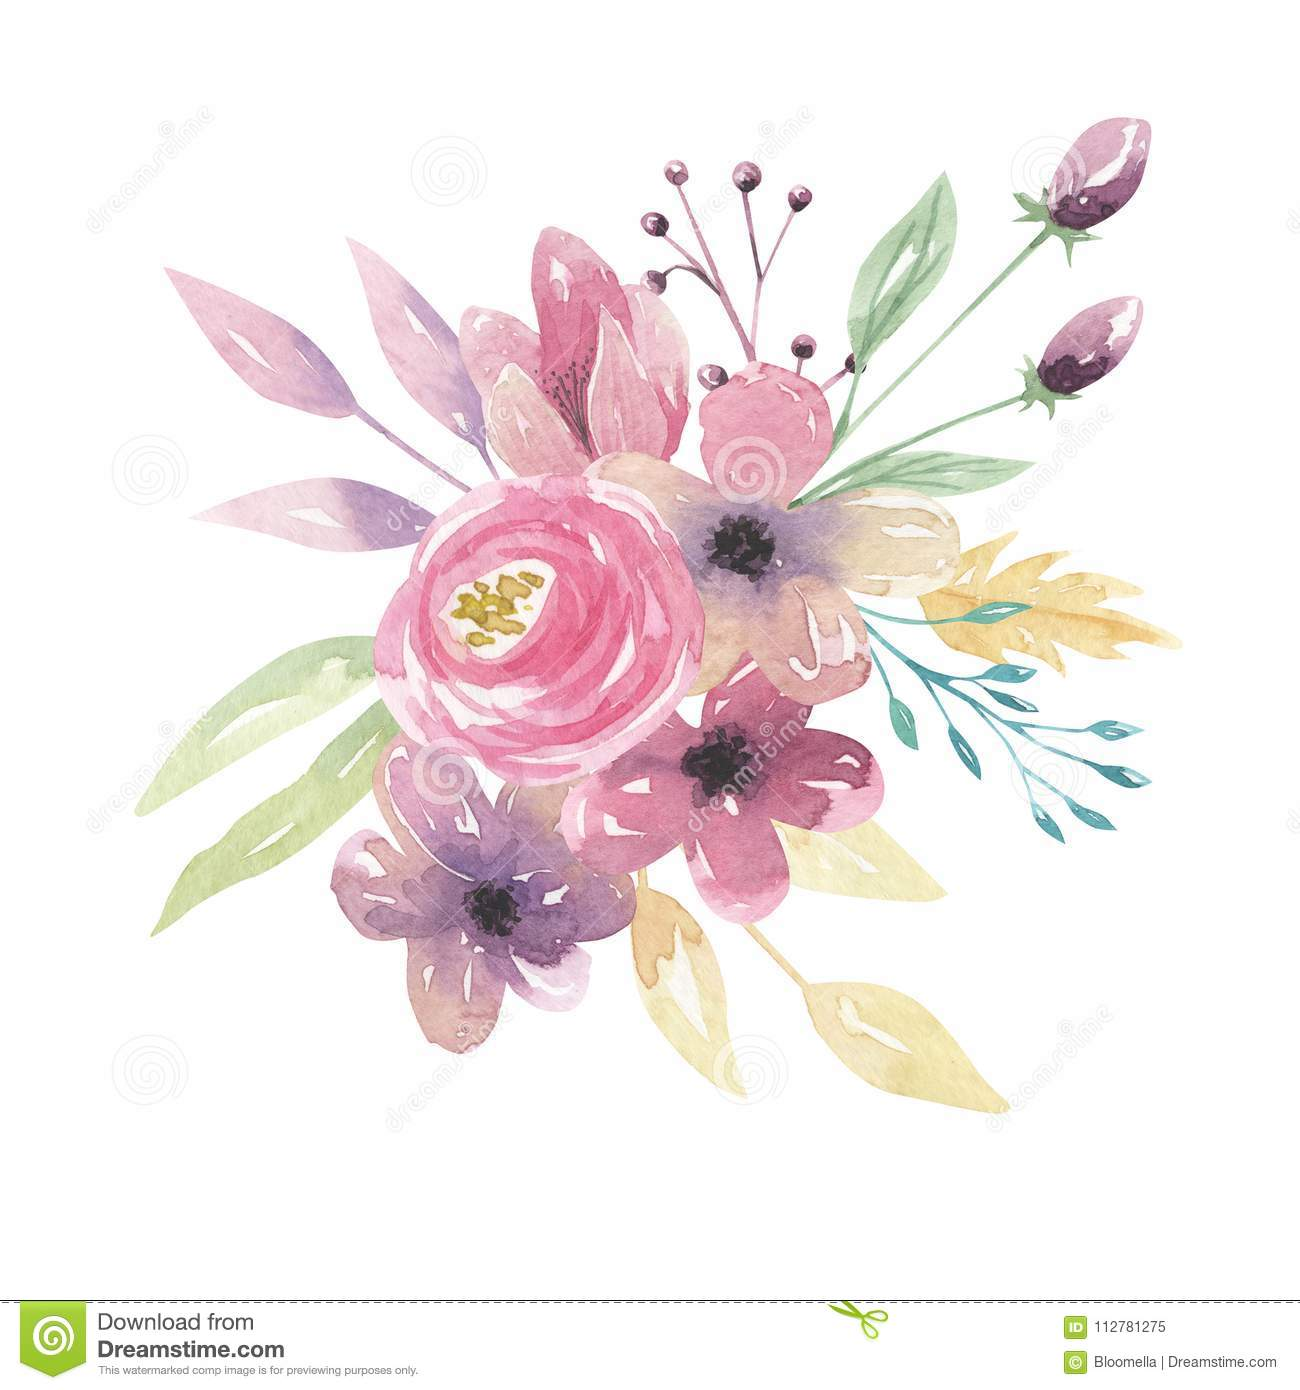 Watercolor floral pink bouquet berries purple flowers leaves green download comp izmirmasajfo